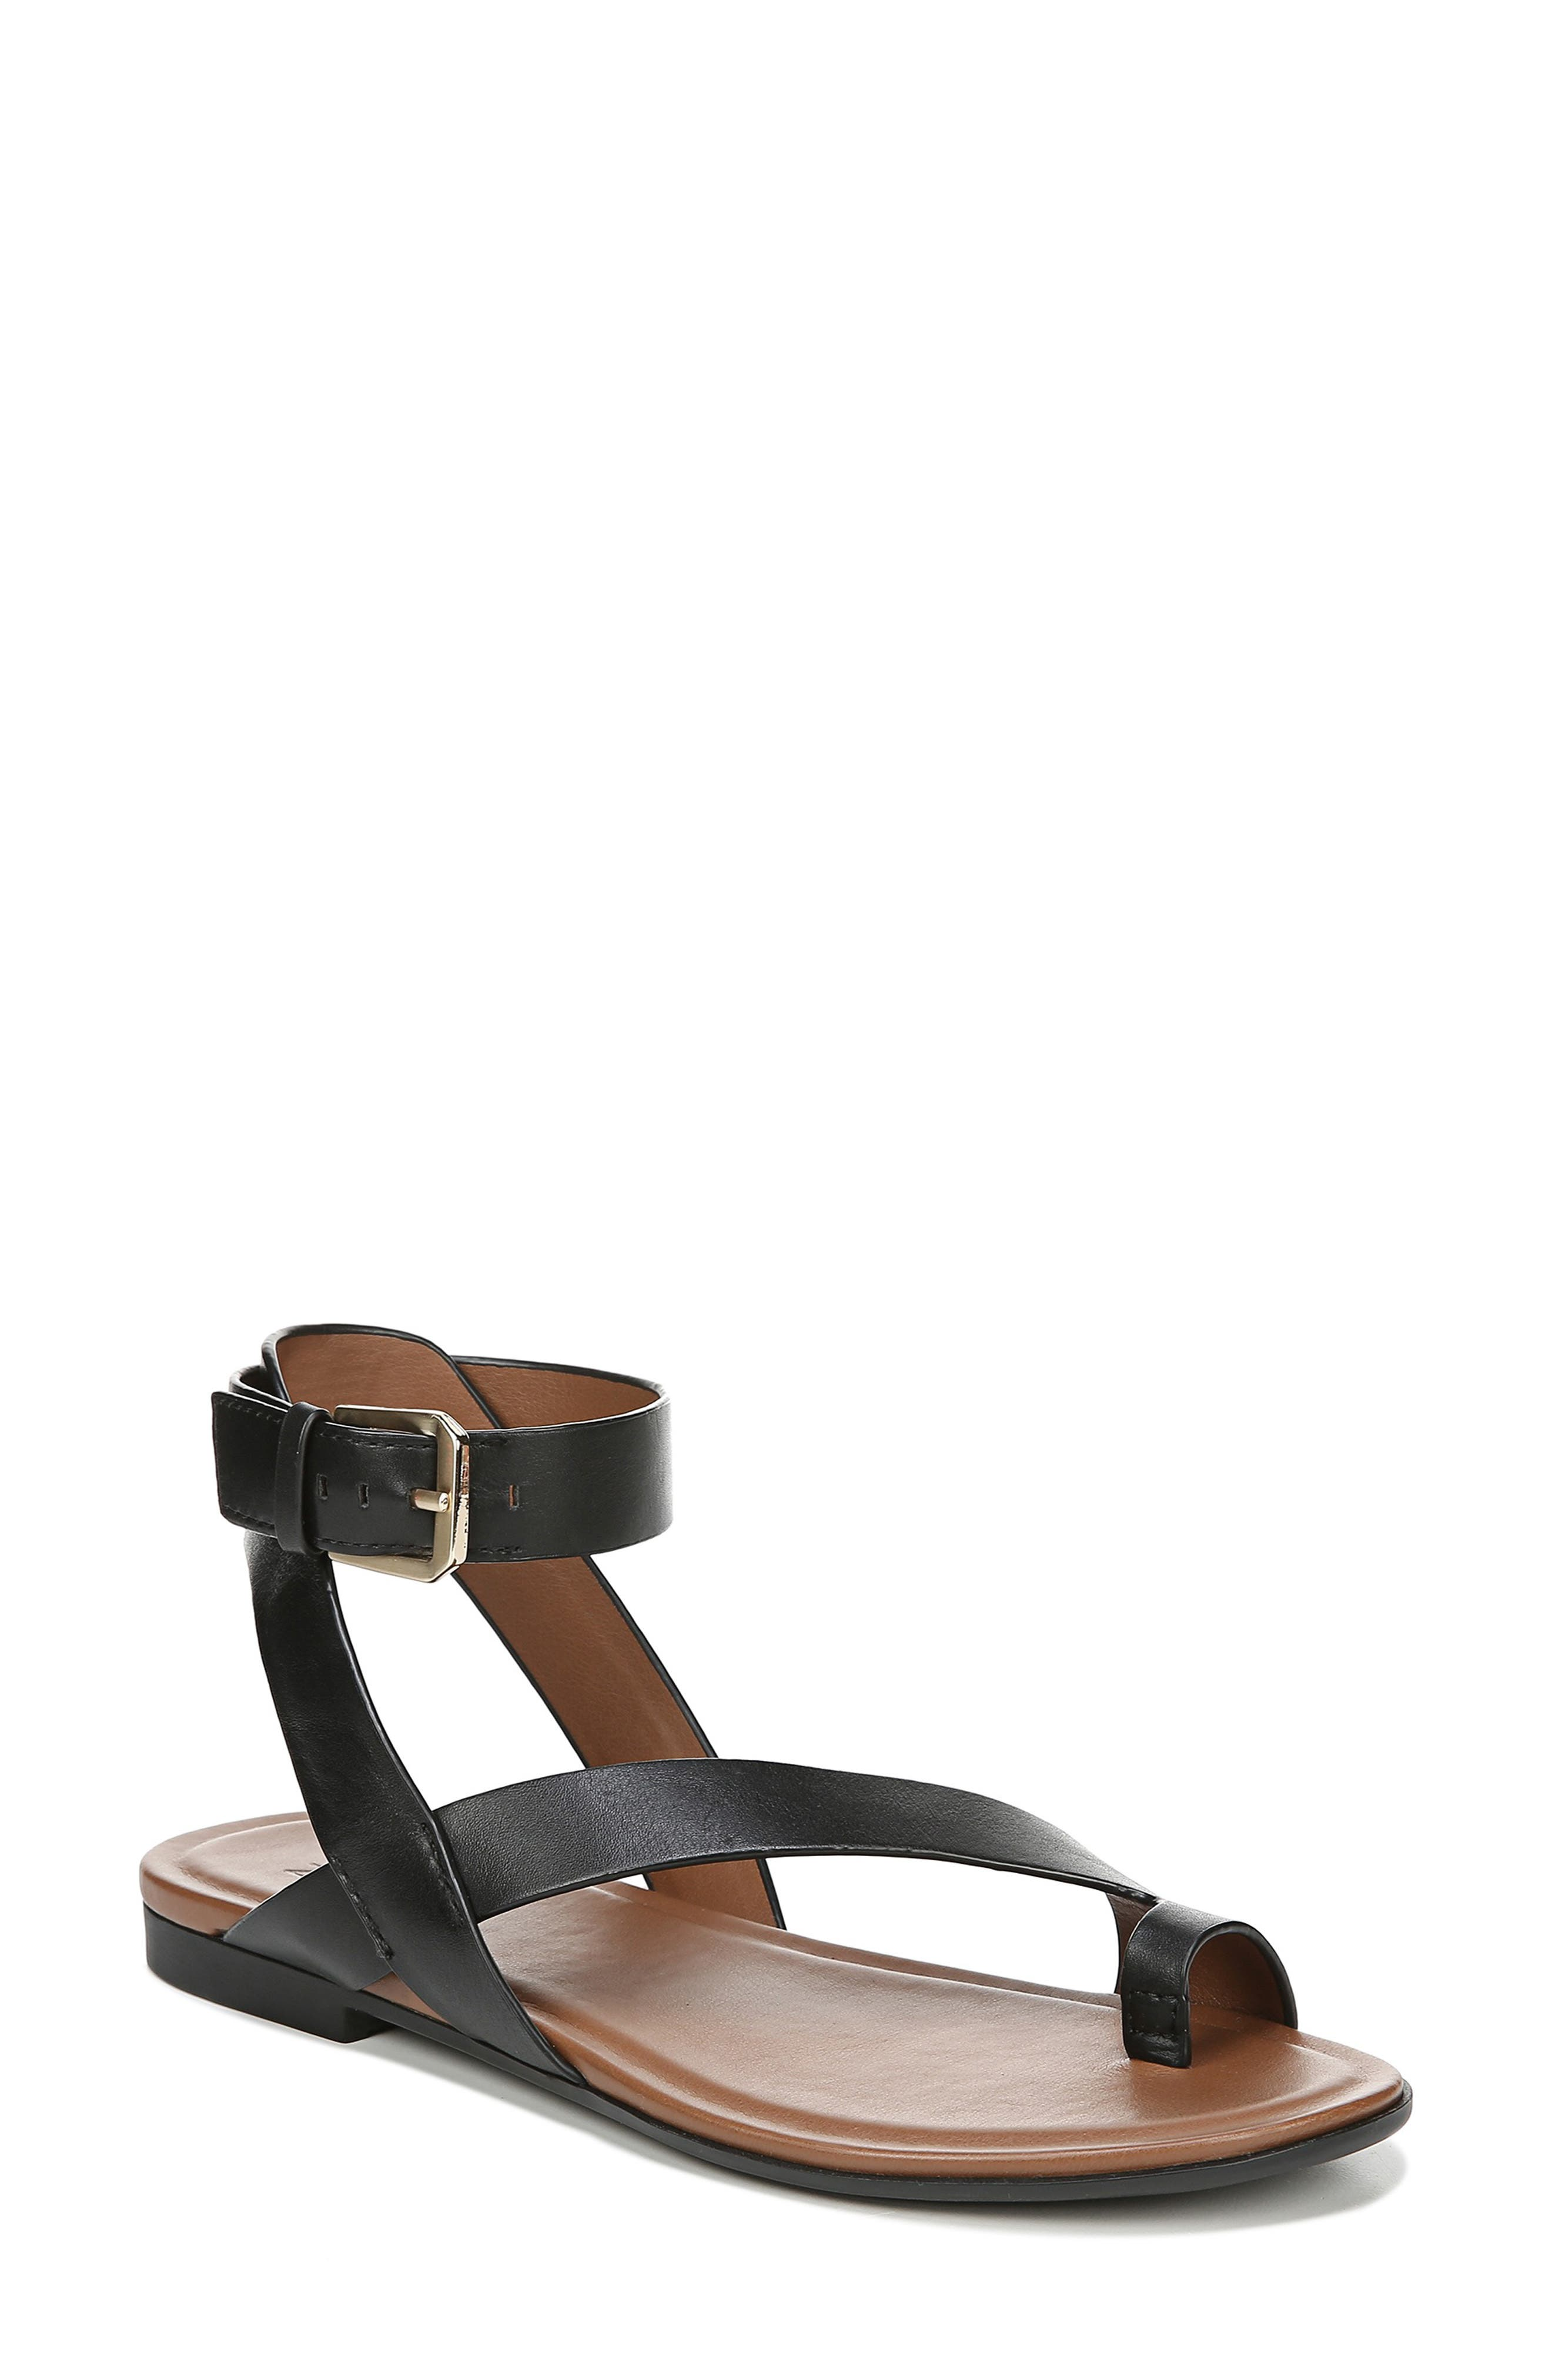 Tally Ankle Strap Sandal,                             Main thumbnail 1, color,                             BLACK LEATHER